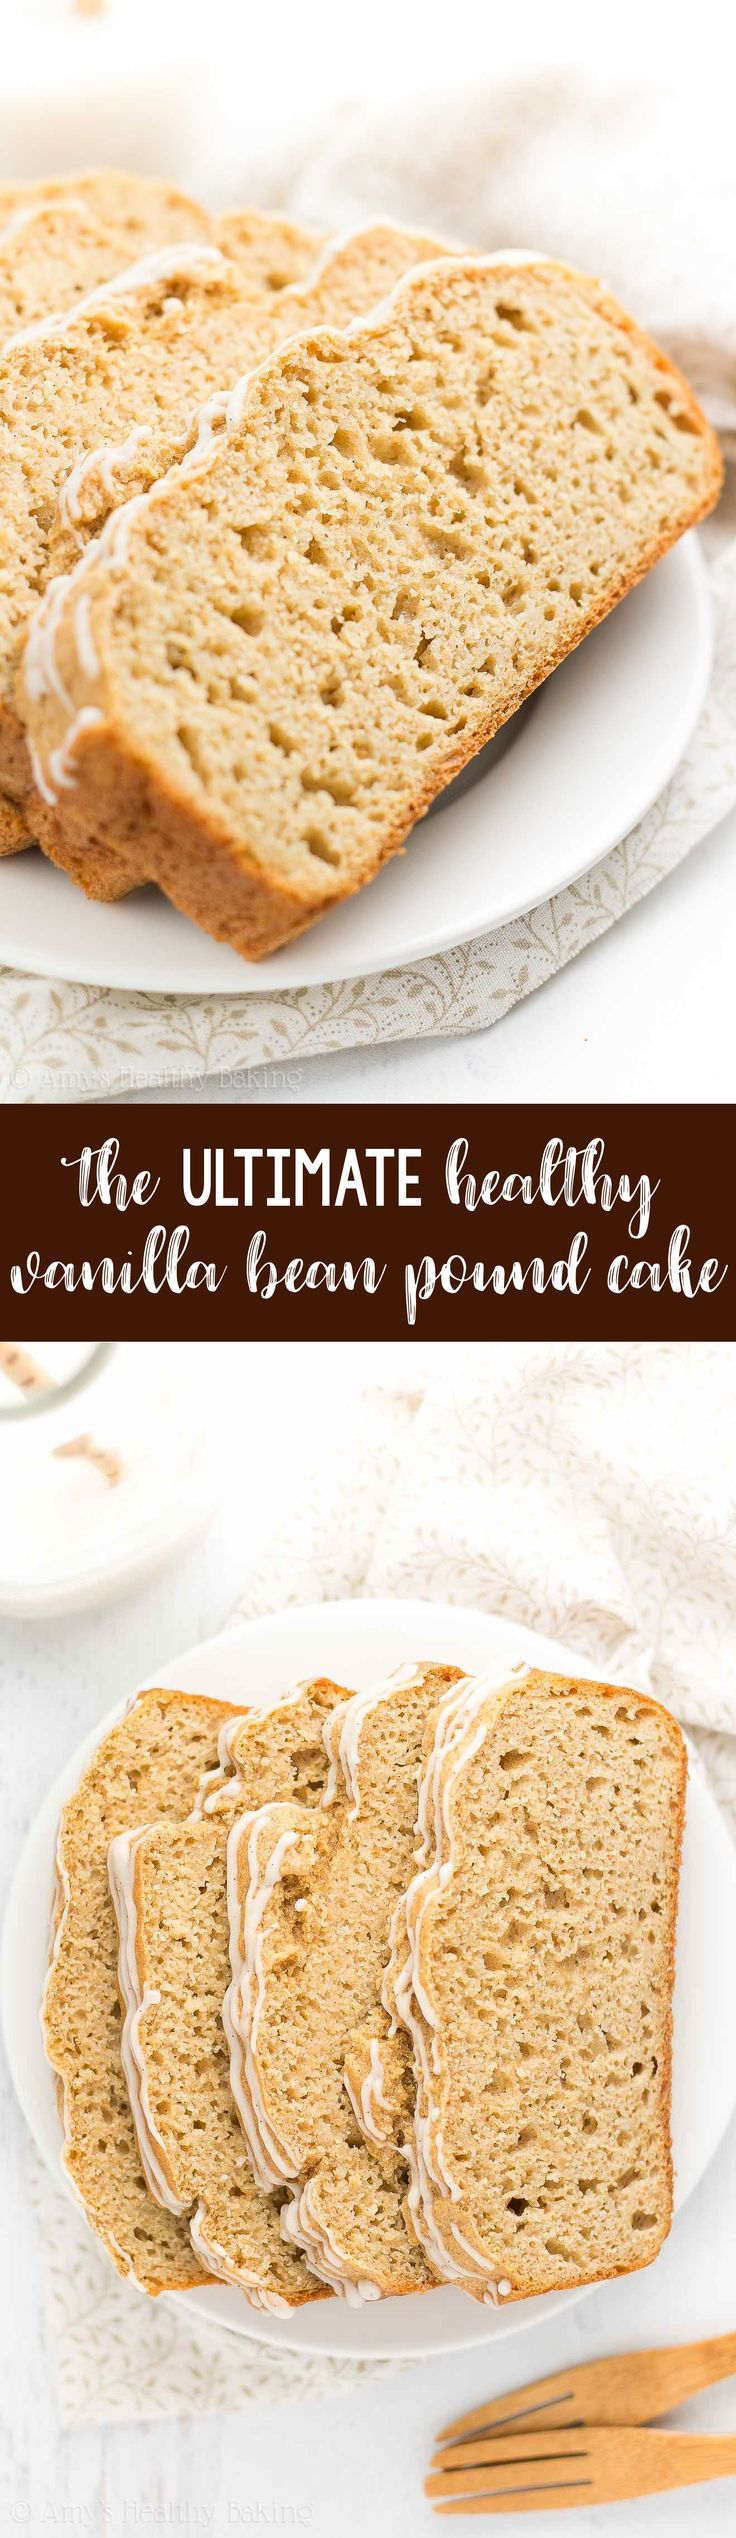 The ULTIMATE Healthy Vanilla Bean Pound Cake! Sweet, tender & only 125 calories! This easy recipe truly is the BEST pound cake I've ever had! | best vanilla pound cake | easy vanilla pound cake recipe | classic vanilla pound cake | vanilla pound cake loaf